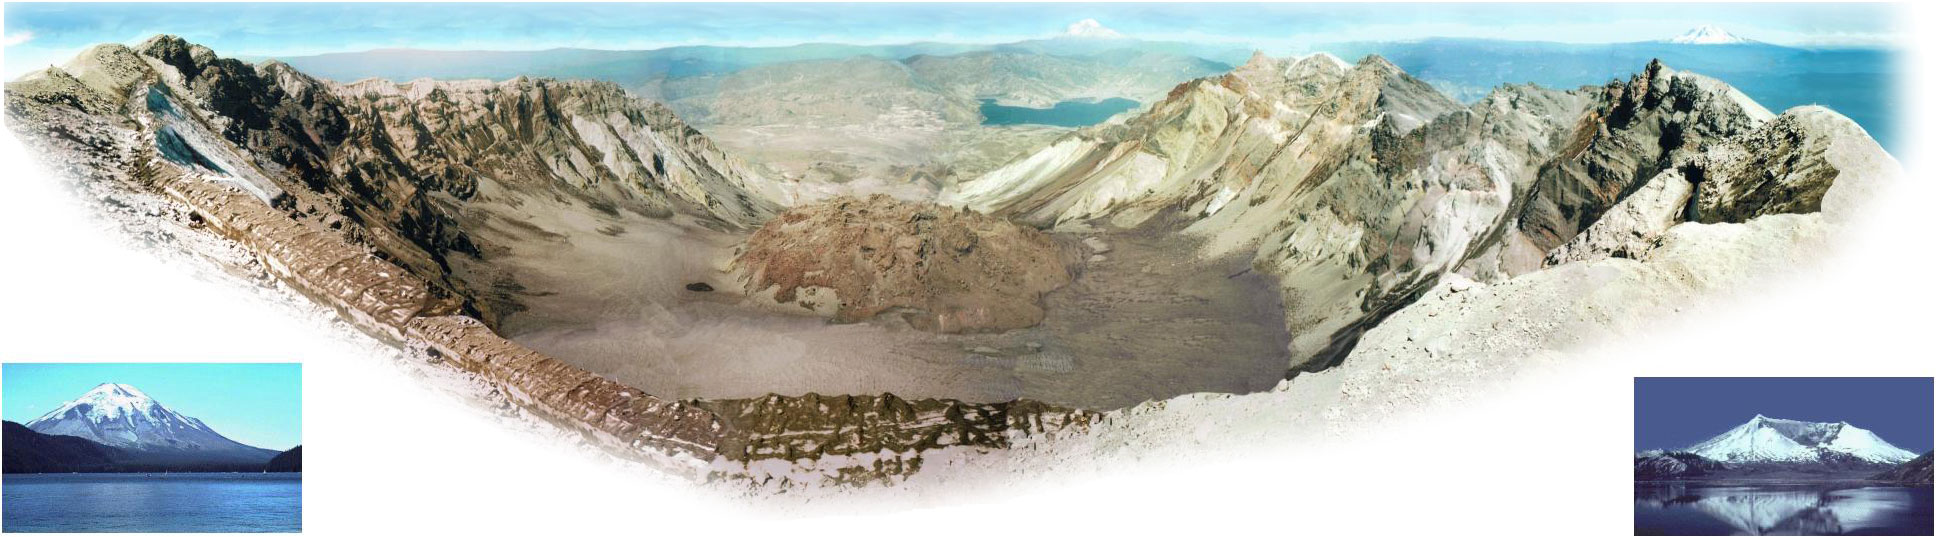 Eruptionof mt saint helens 173 sequence of events sketch photos